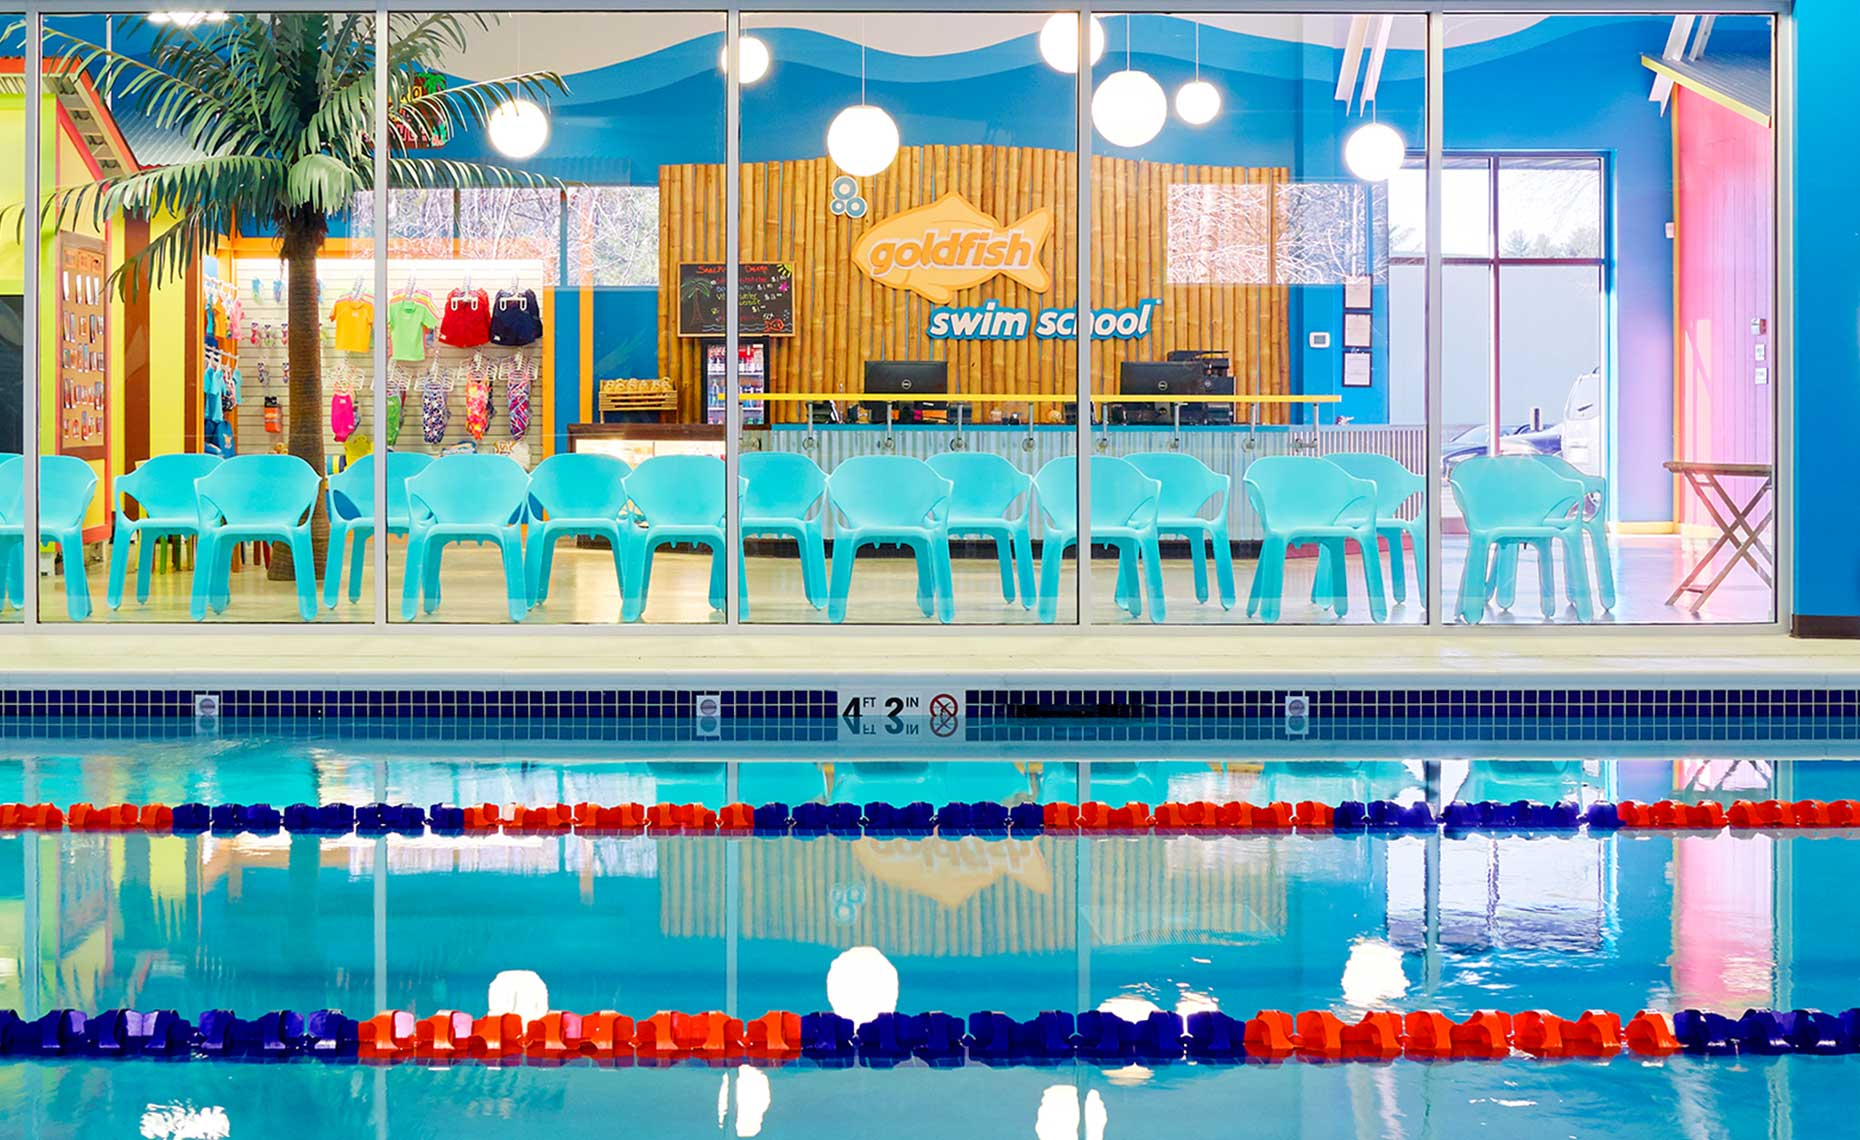 Swimming Pool at Swim School Against-Mural-Wall-Through-Viewing-Glass-19239_IP